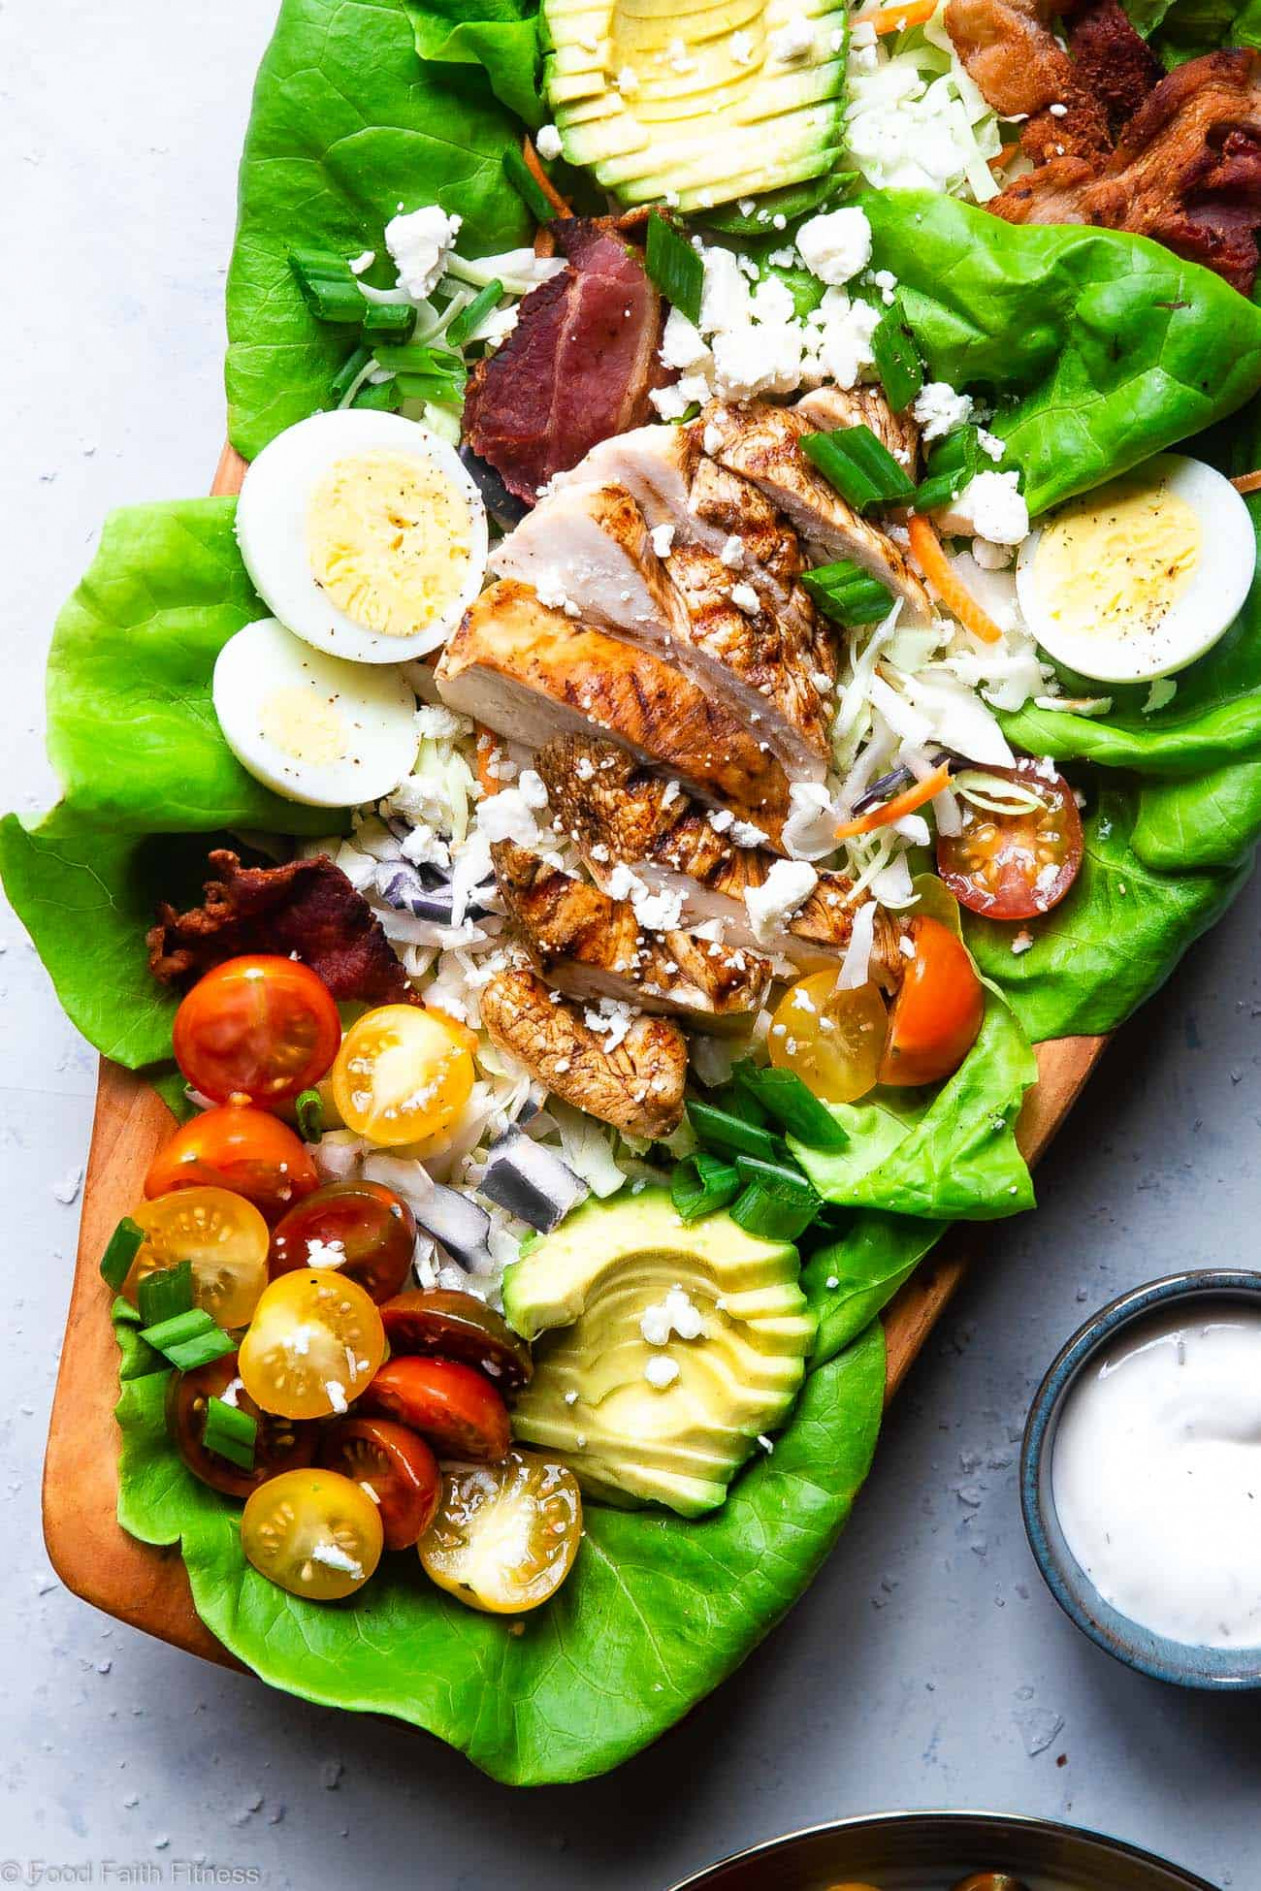 Healthy Chicken Cobb Salad Recipe | Food Faith Fitness - Healthy Recipes Salads